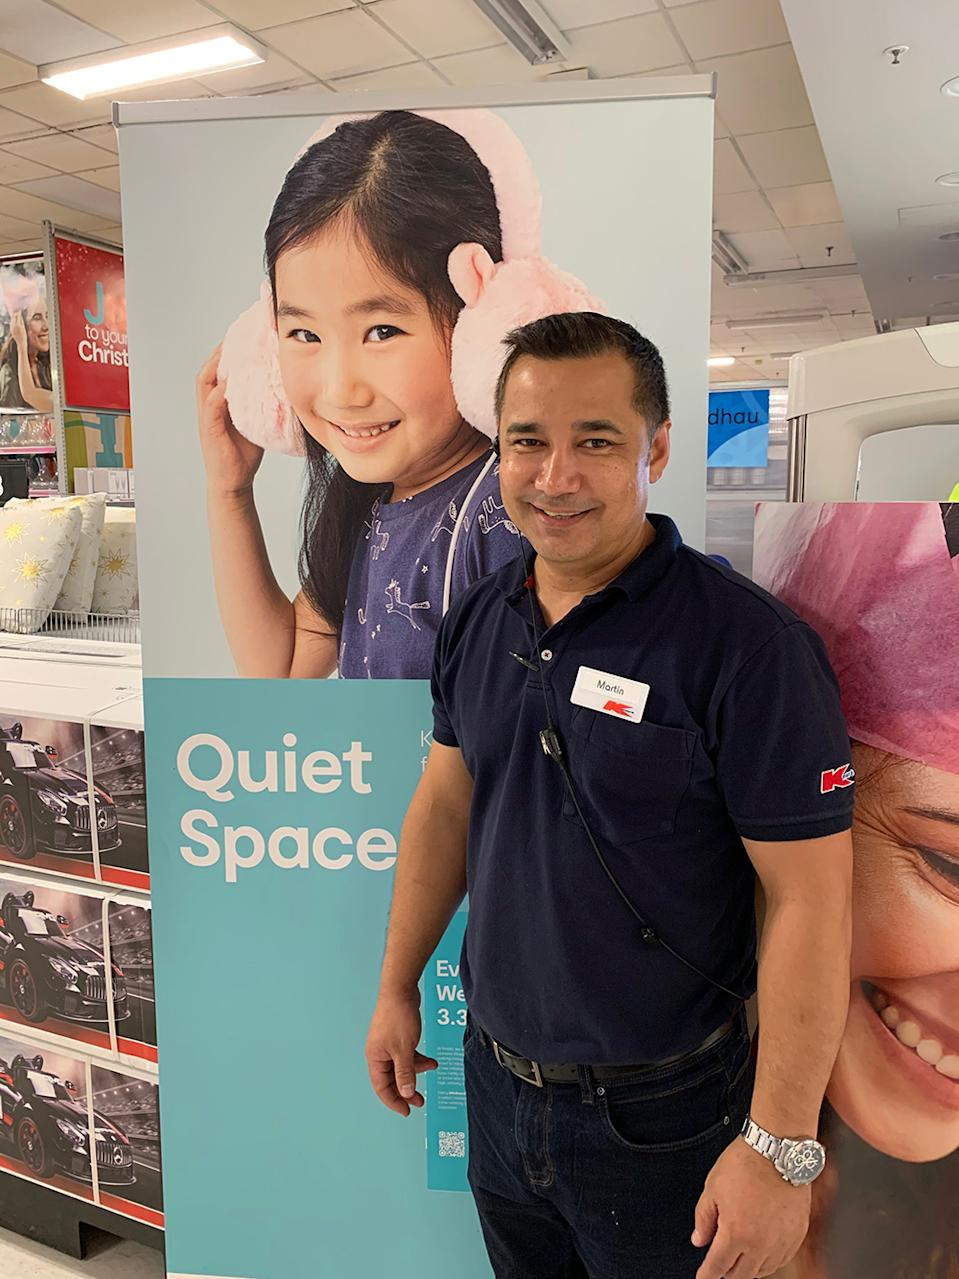 From this week, every Wednesday from 3:30pm to 5:30pm, select Kmart stores will provide a low-sensory shopping experience for customers with reduced noise, lighting and distractions. Photo: Supplied